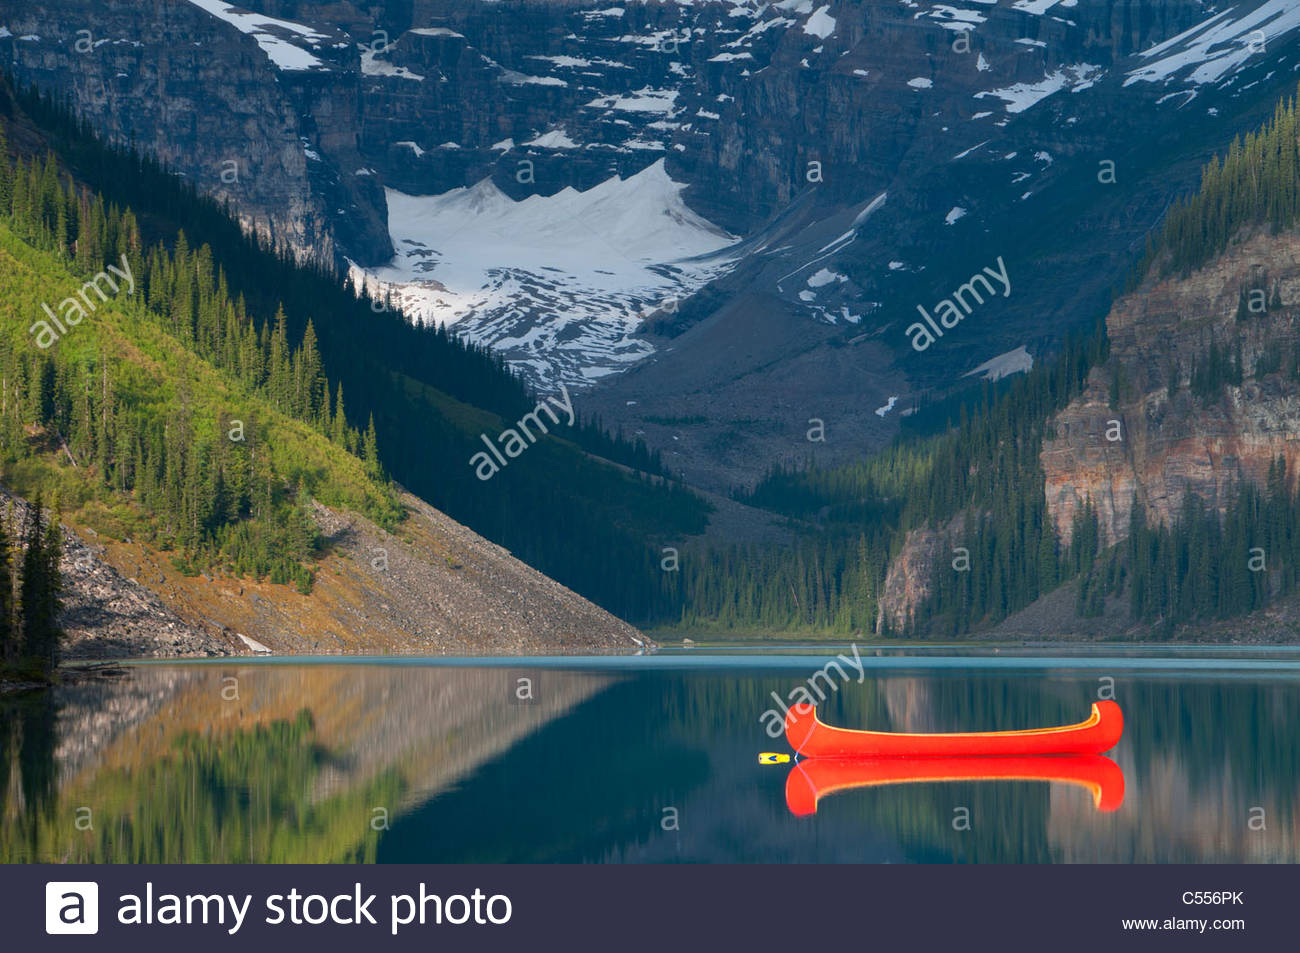 Rote Kanu in den See, Lake Louise, Banff Nationalpark, Alberta, Kanada Stockfoto